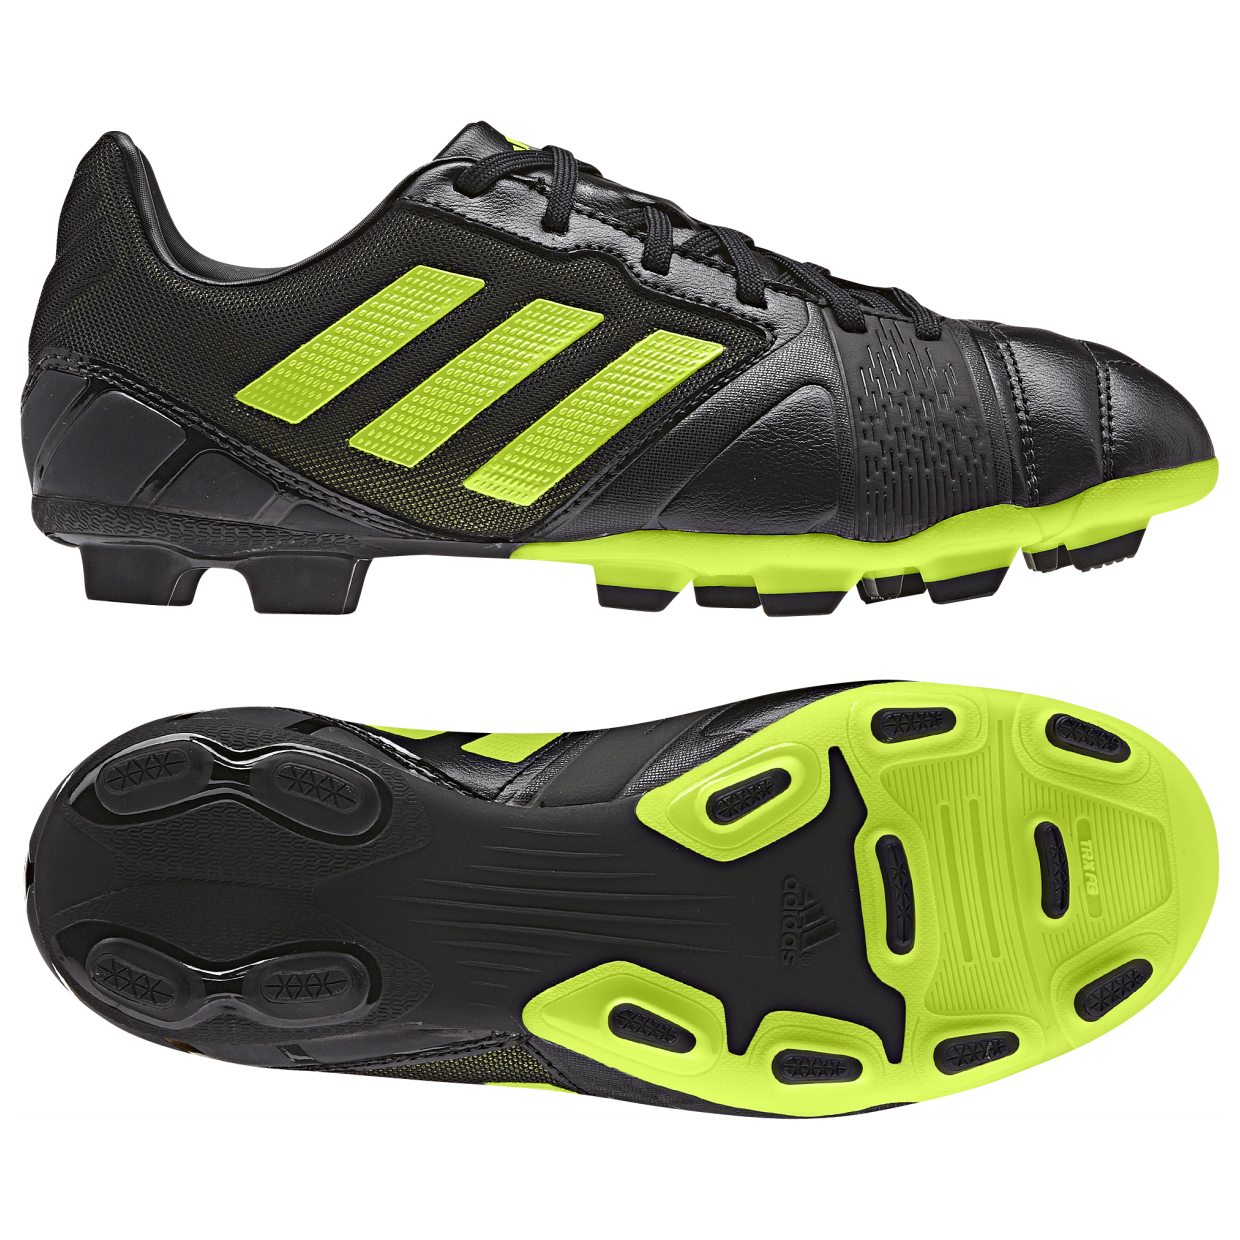 Nitrocharge 2.0 TRX FG Kids Black